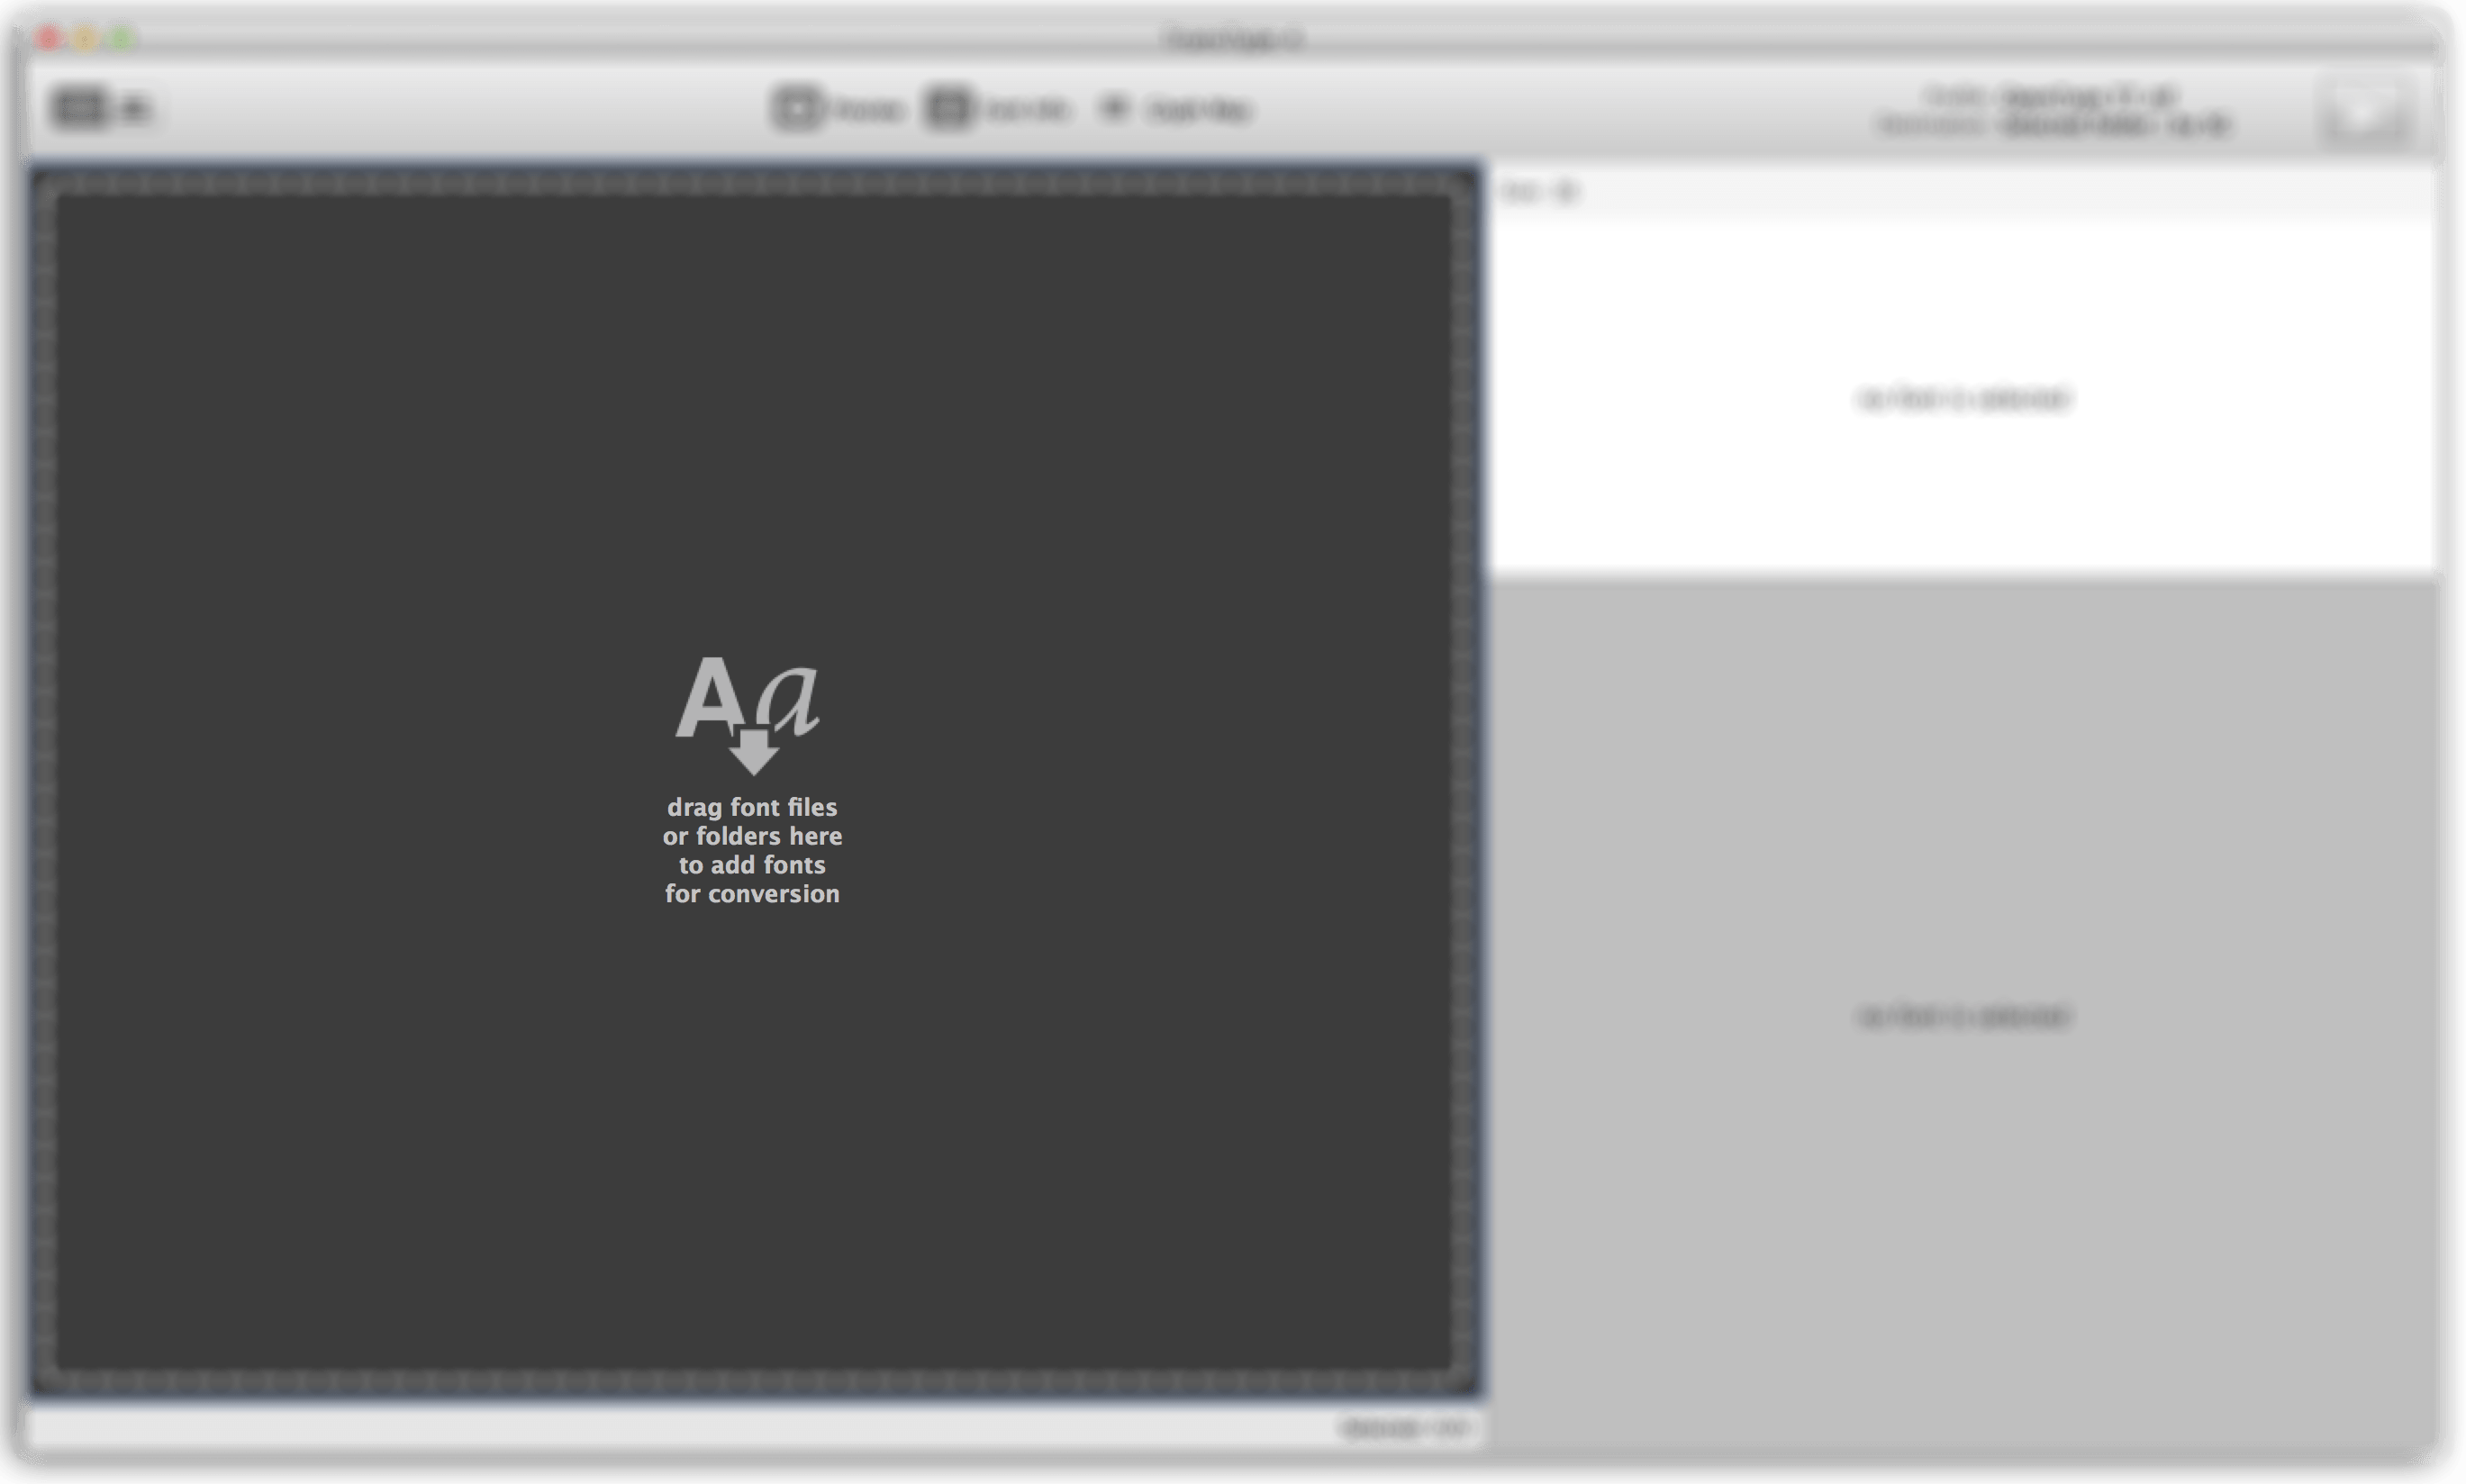 Drag-drop font files into the TransType window